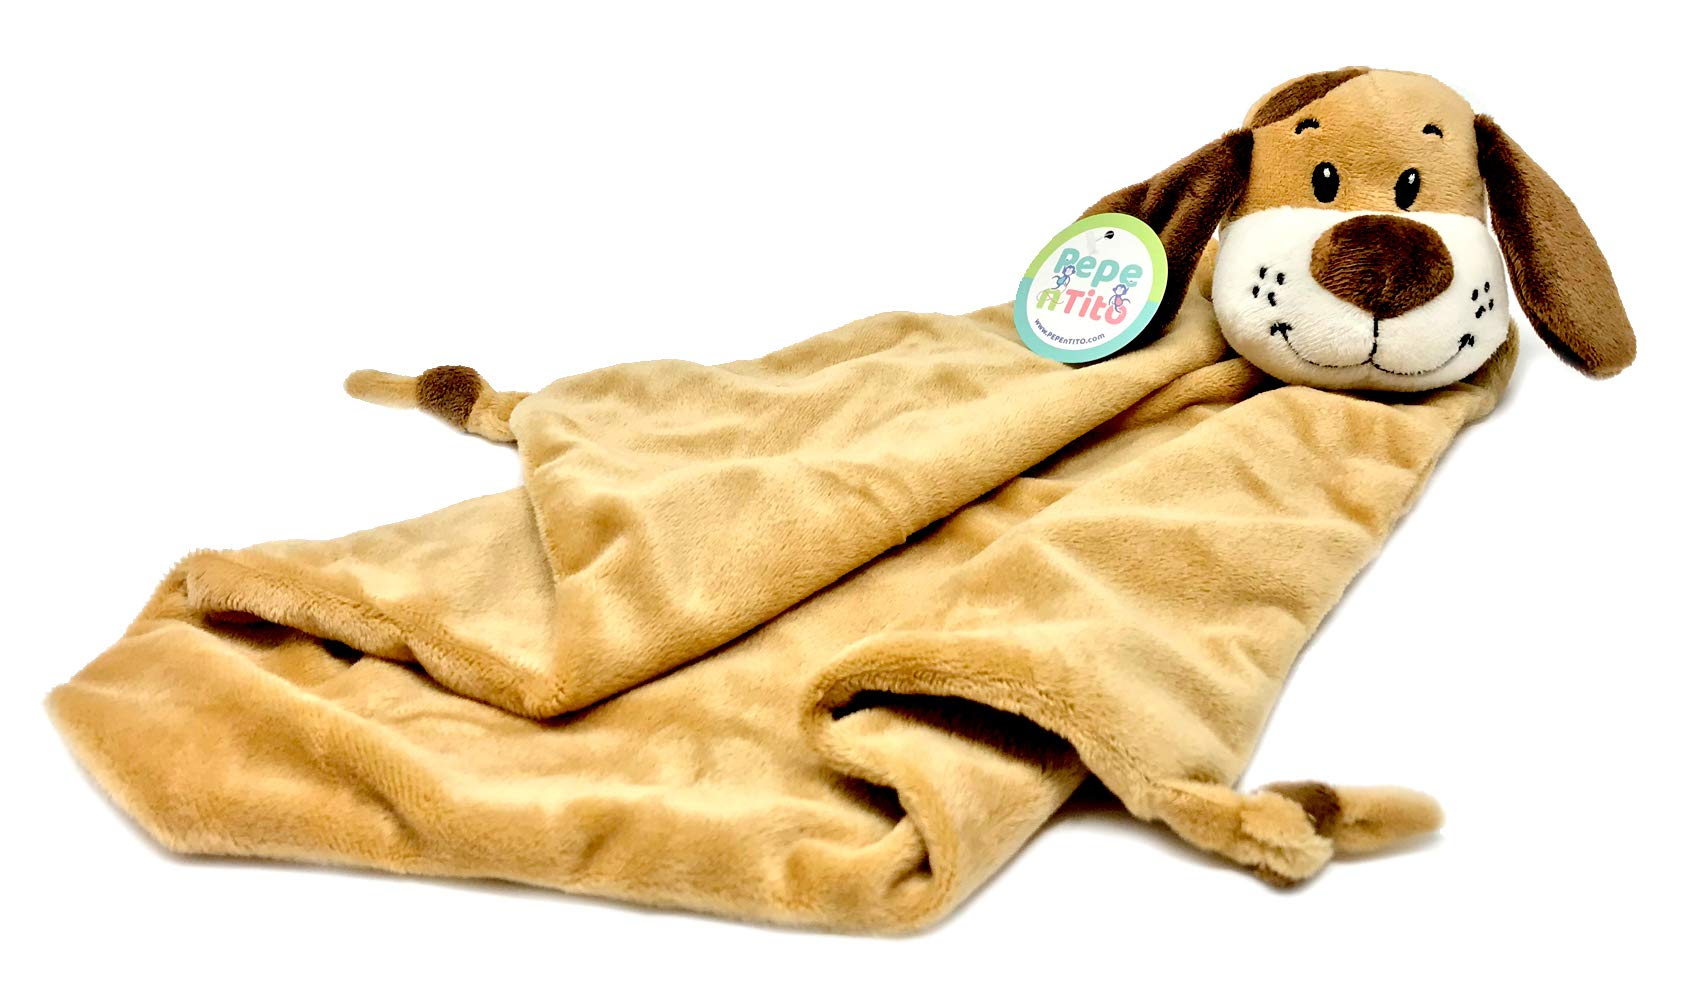 Baby Security Blanket by Pepe n Tito - 18'' Tall Soft Fleece Baby Blanket for Boys & Girls – Baby Soothing Blanket with Plush Stuffed Animal Puppy - Dog